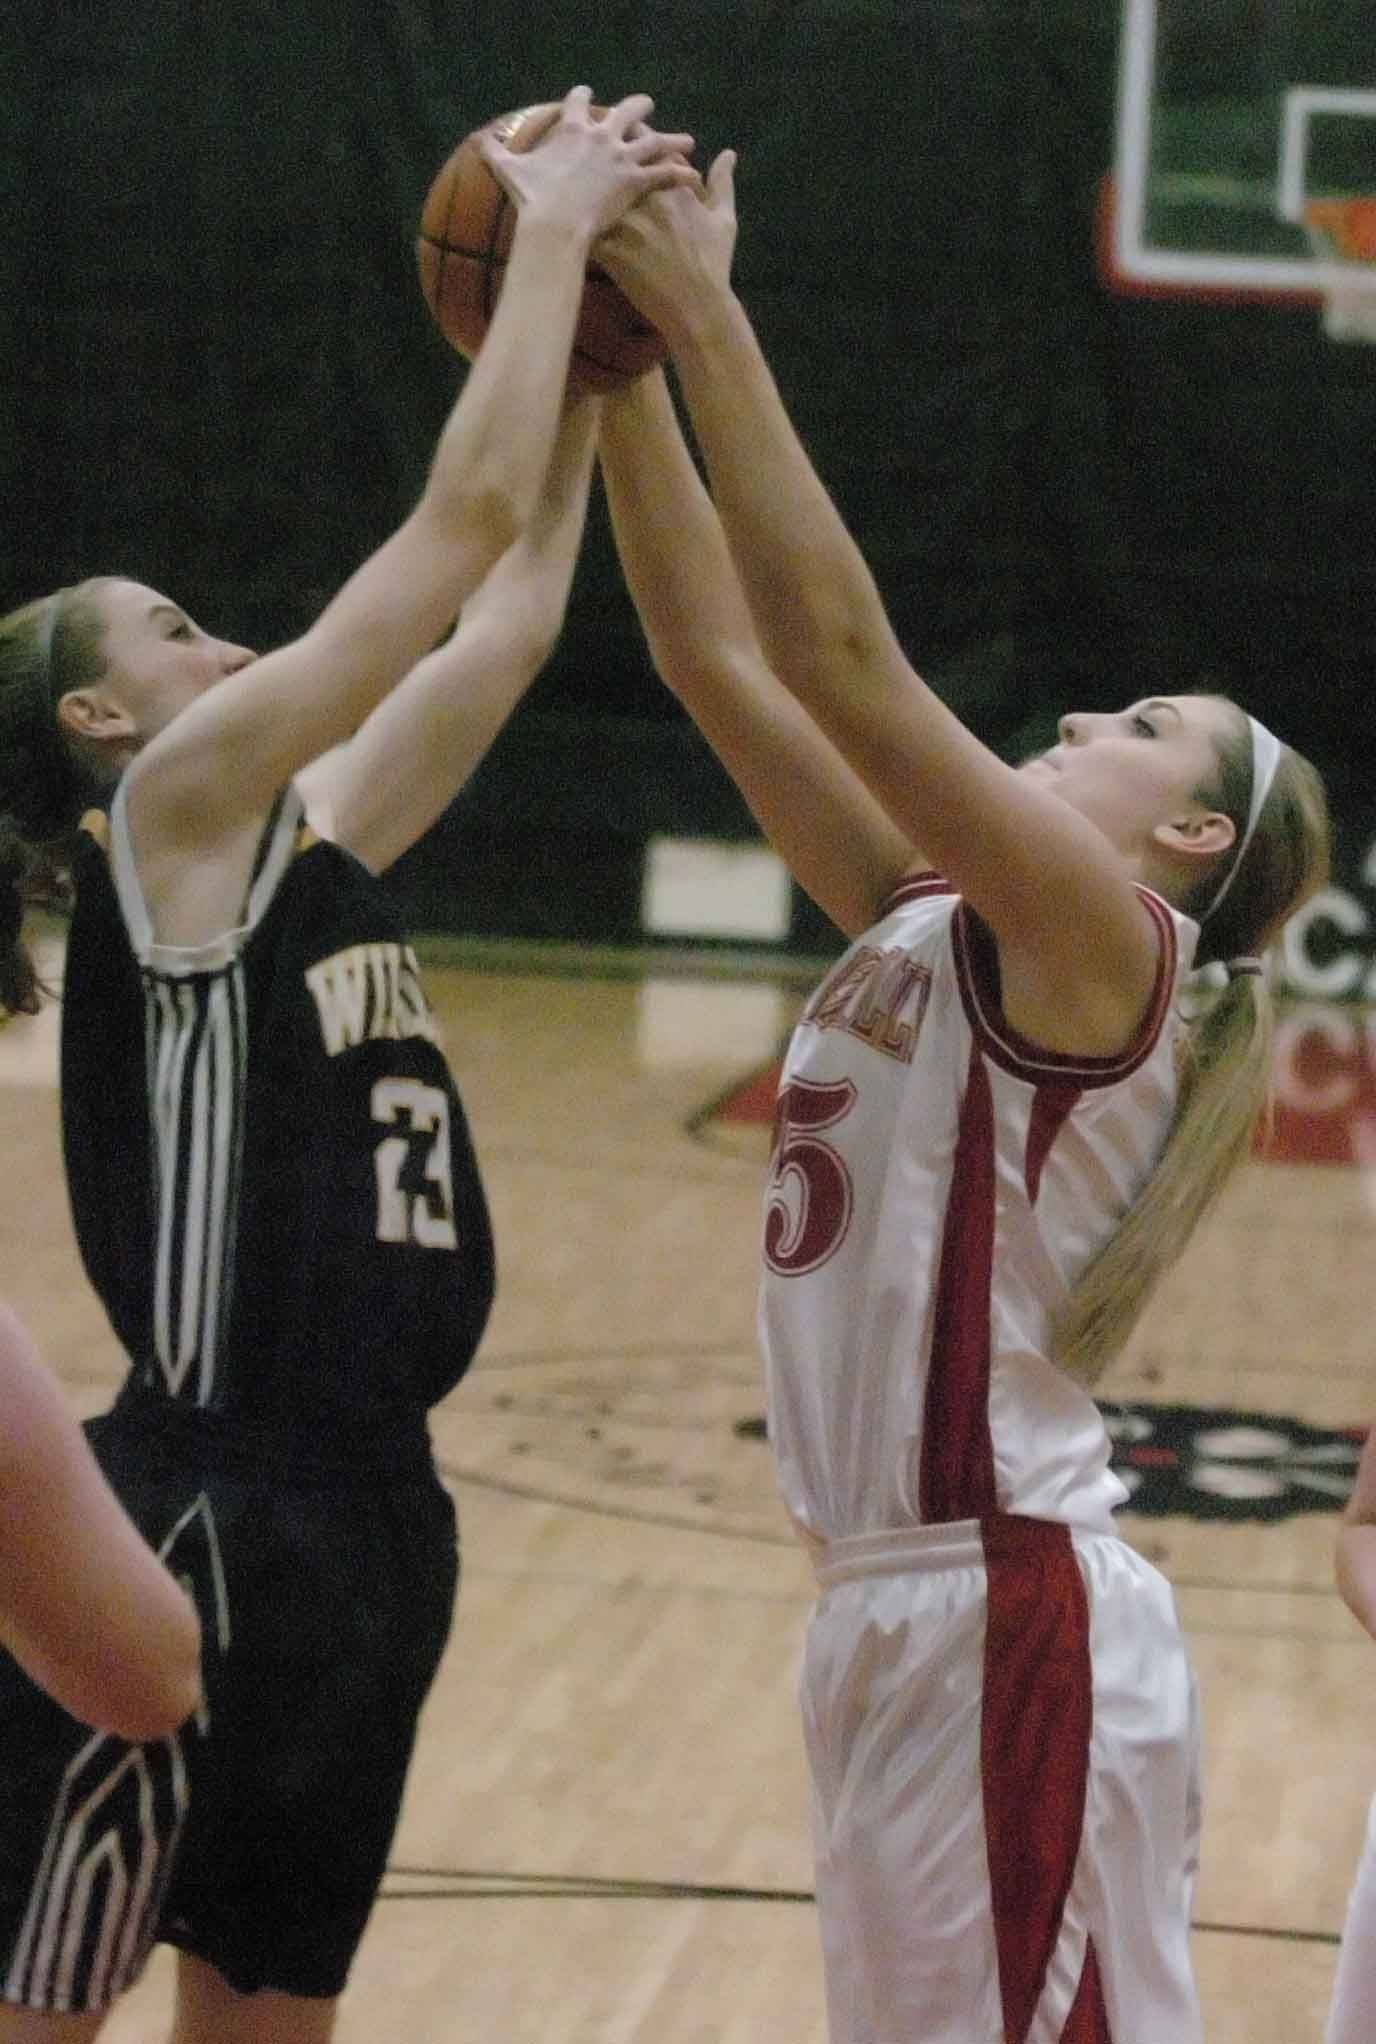 Allison Hendrick of Neuqua Valley ,left, and Victoria Towbridge of Naperville Central go up for a rebound.